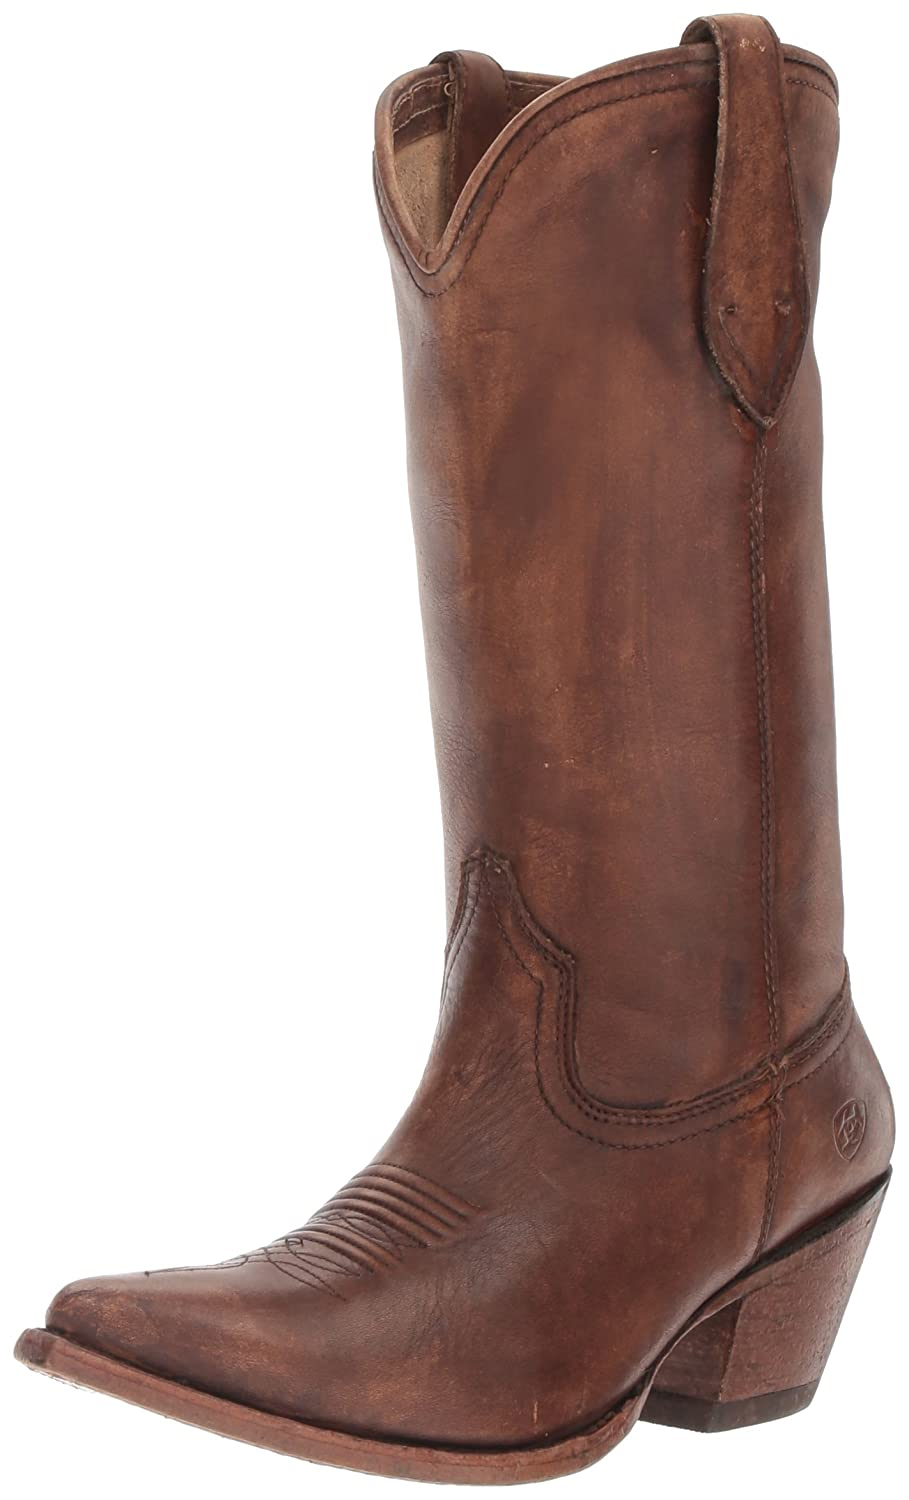 Ariat Women's Josefina Western Cowboy Boot B01L91OE5U 8.5 B(M) US|Naturally Distressed Brown